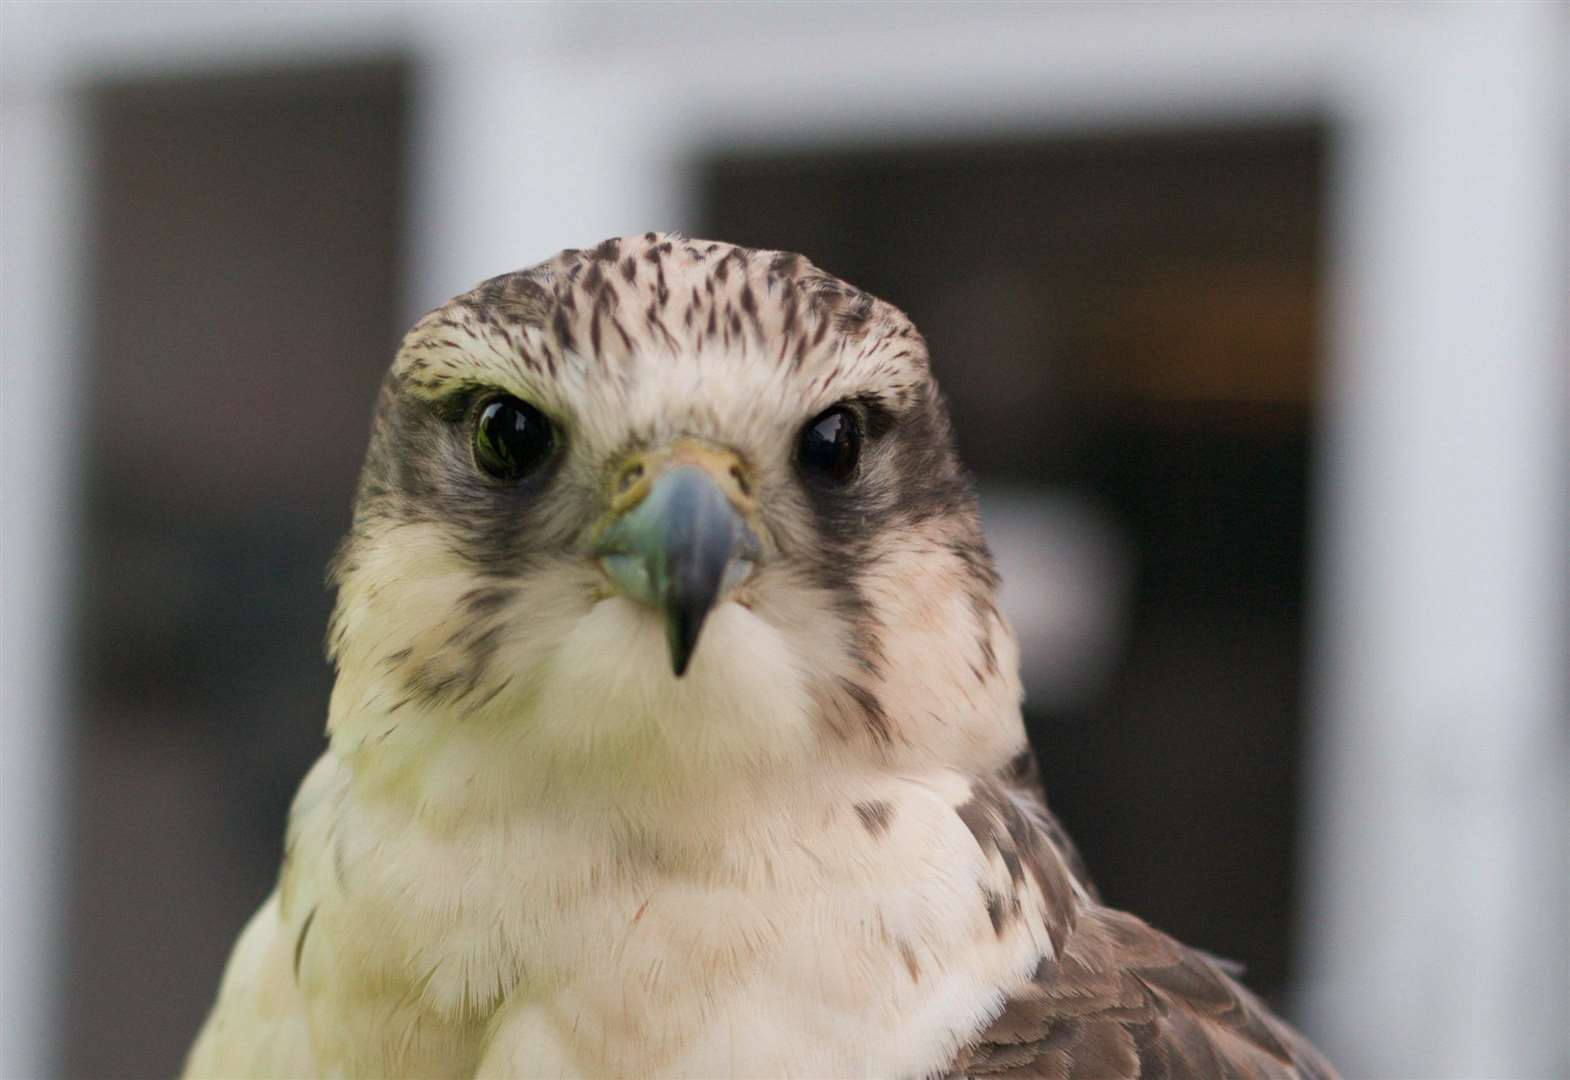 Meet Kenna the Falcon - who could become the pigeon frightener of Diss